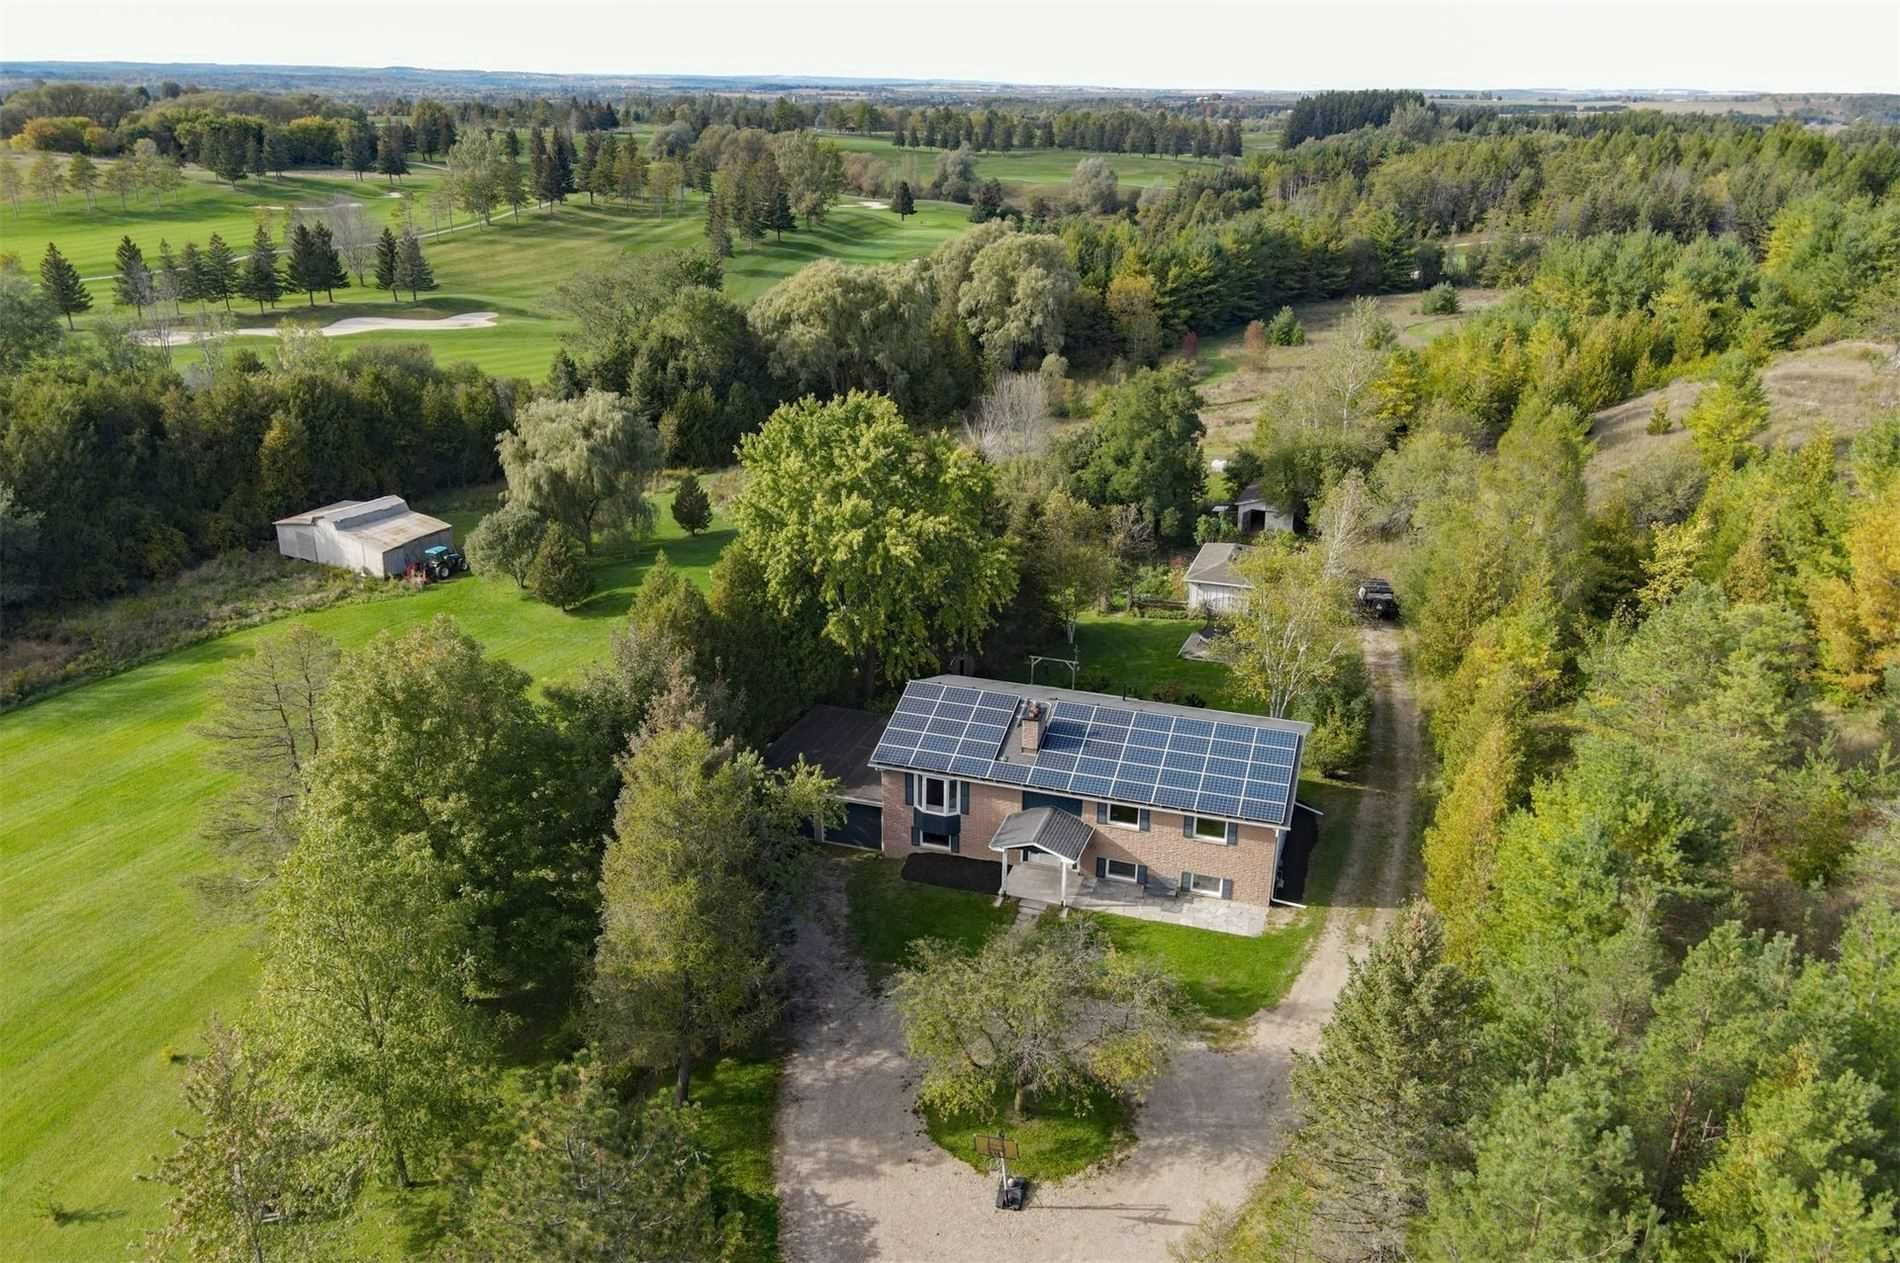 Main Photo: 7150 4th Concession Rd in New Tecumseth: Rural New Tecumseth Freehold for sale : MLS®# N5388663